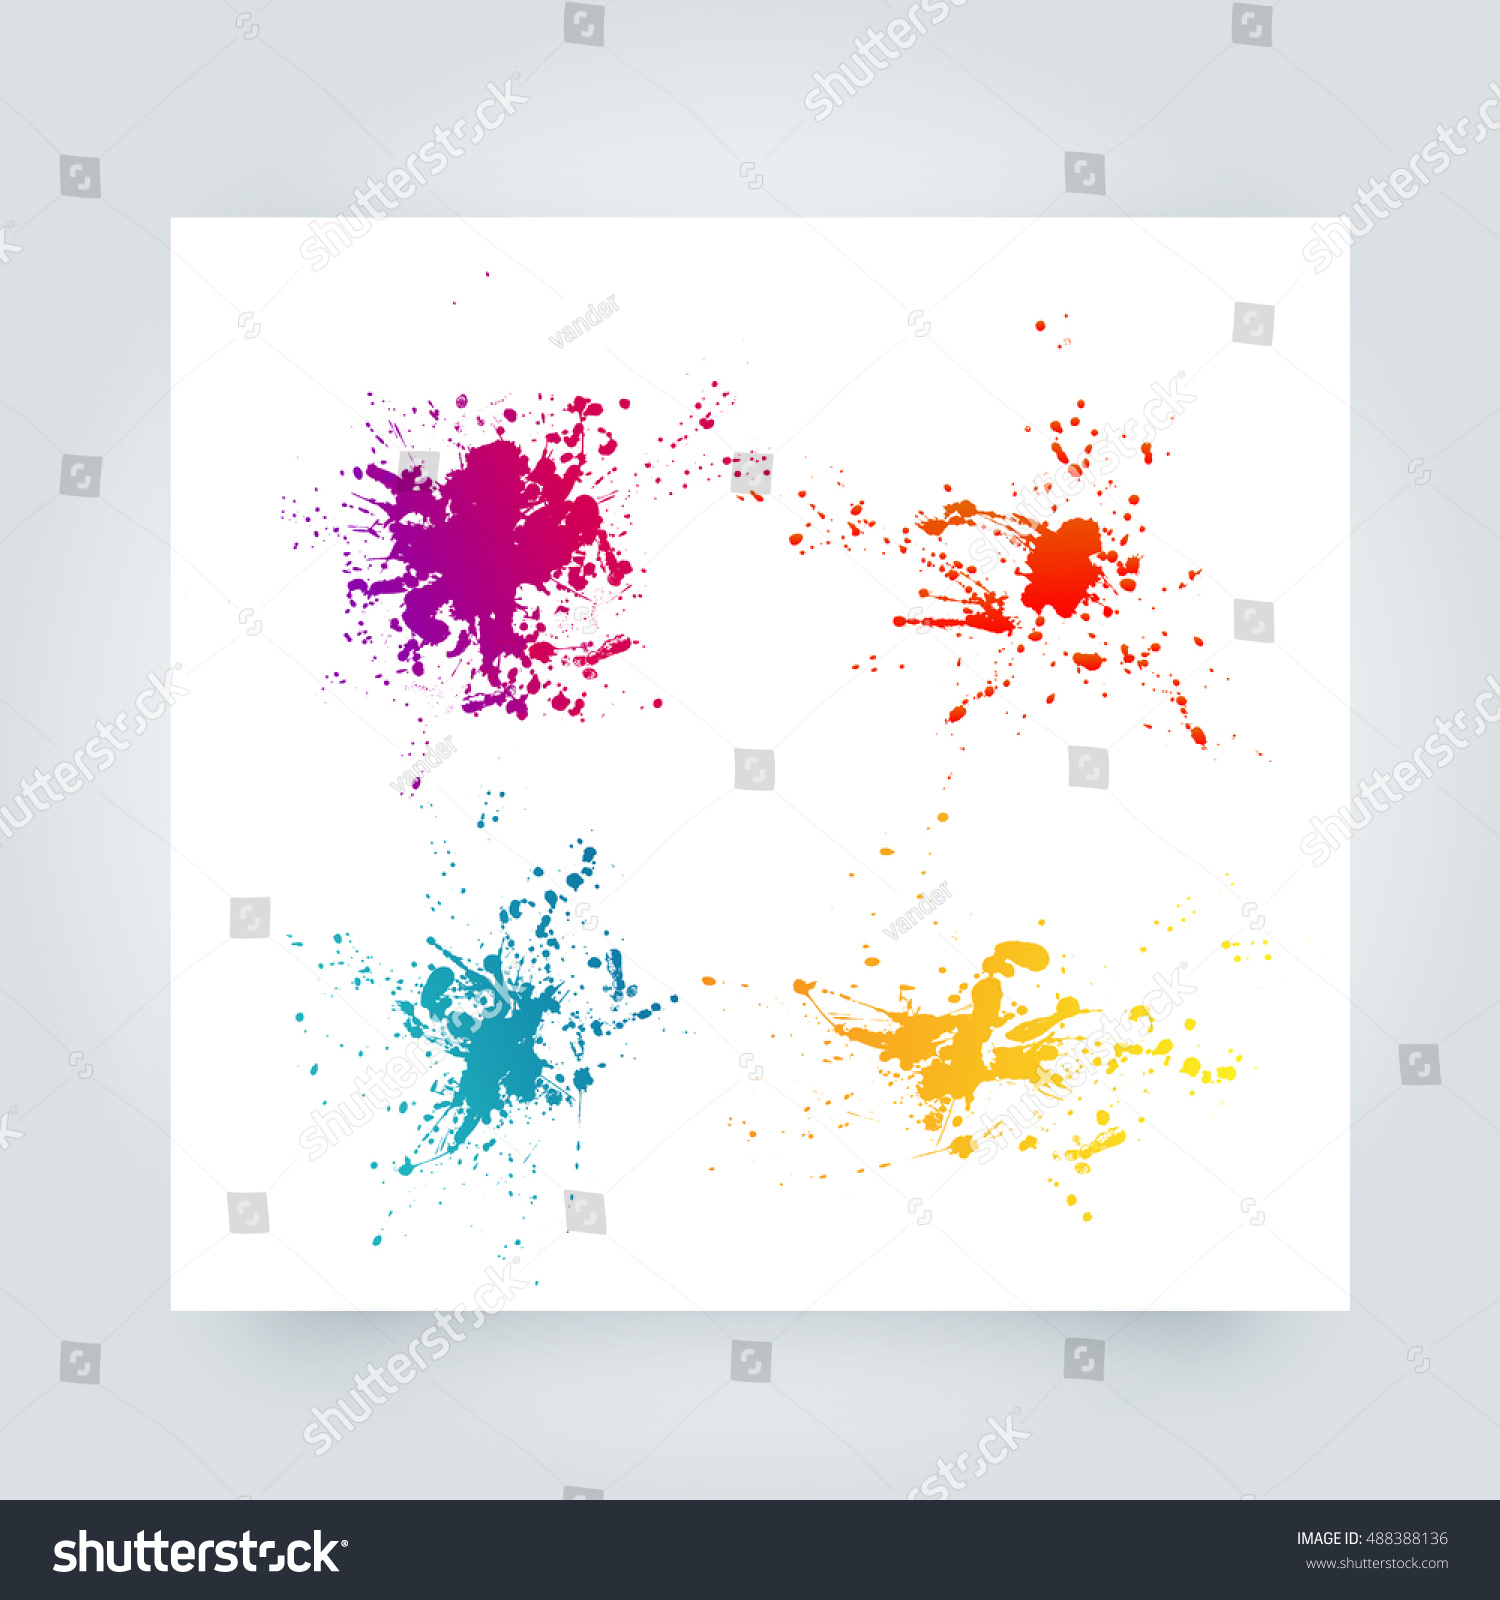 Abstract Paint Splashes Set Design Use Stock Vector (Royalty